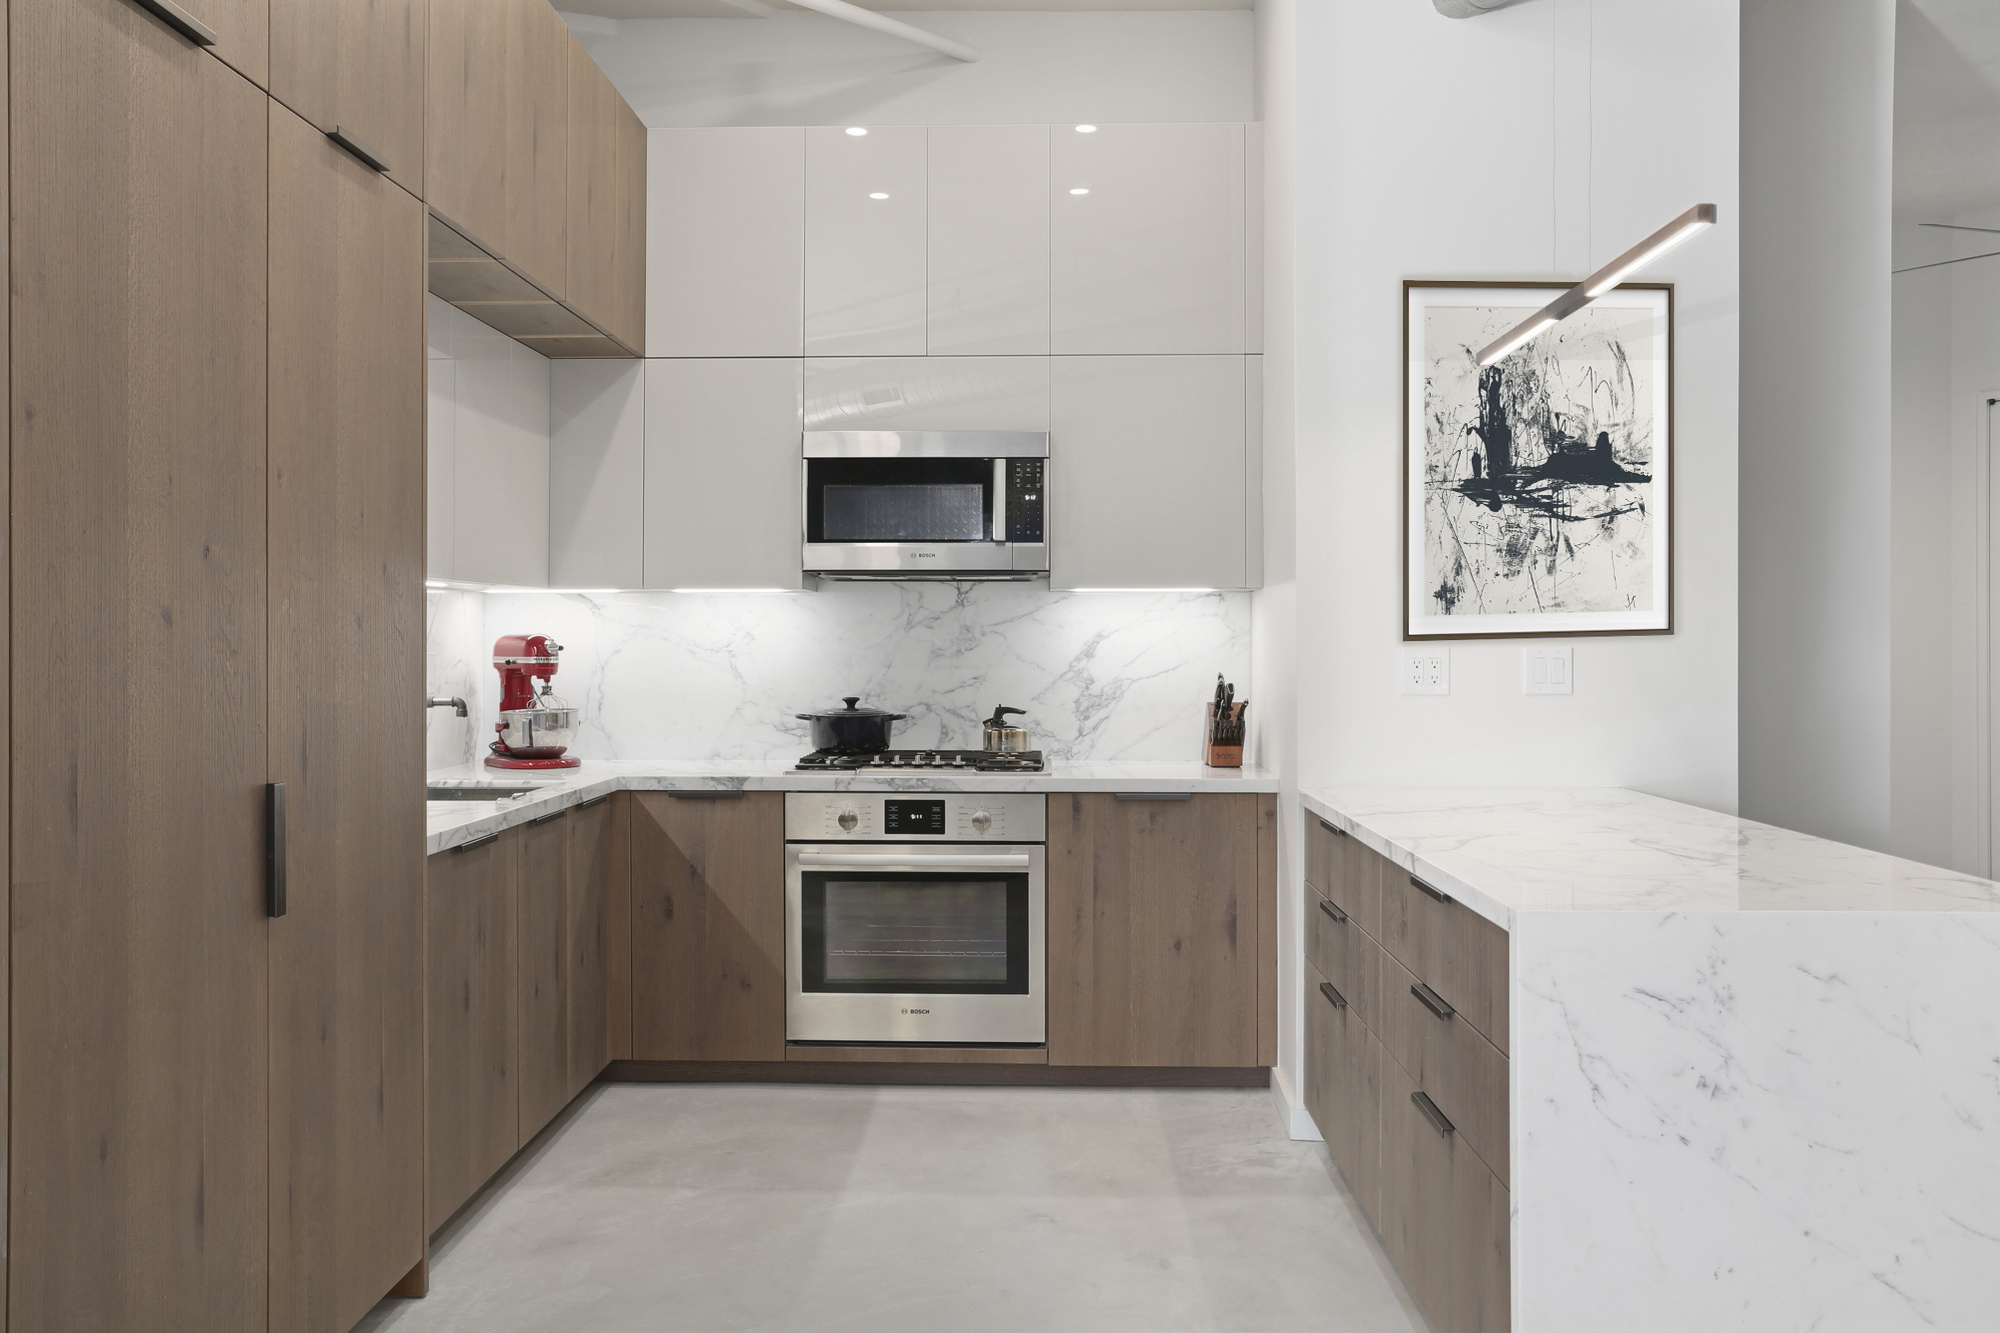 KITCHEN DESIGN AND INSTALL AT TOY FACTORY LOFTS - BROOKLYN, NY